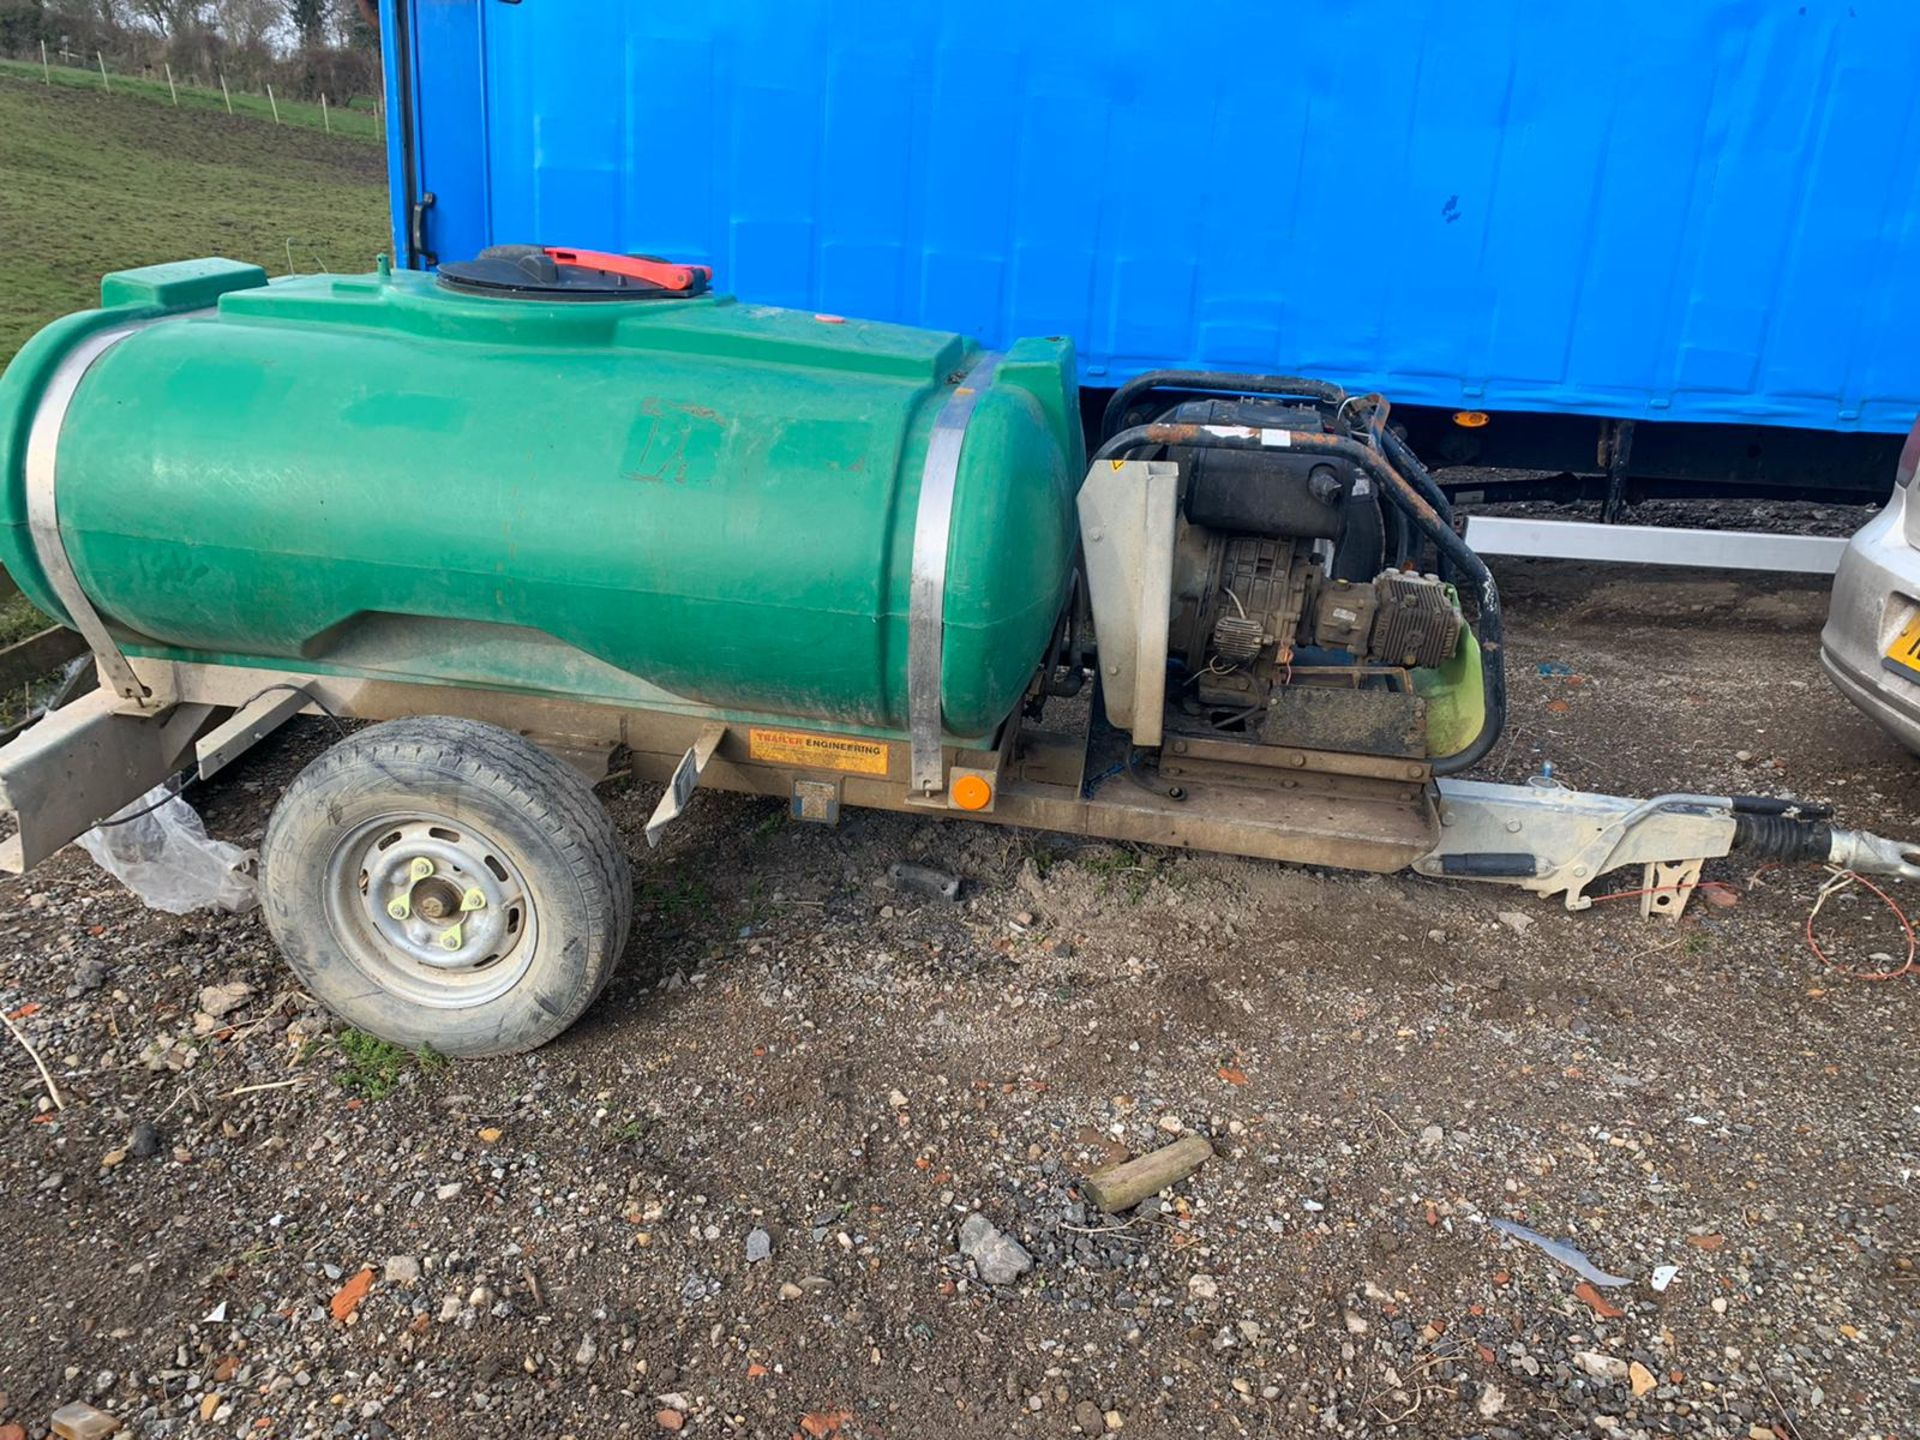 Lot 141 - Yanmar L100 Trailer Engineering Towable Diesel Pressure Washer